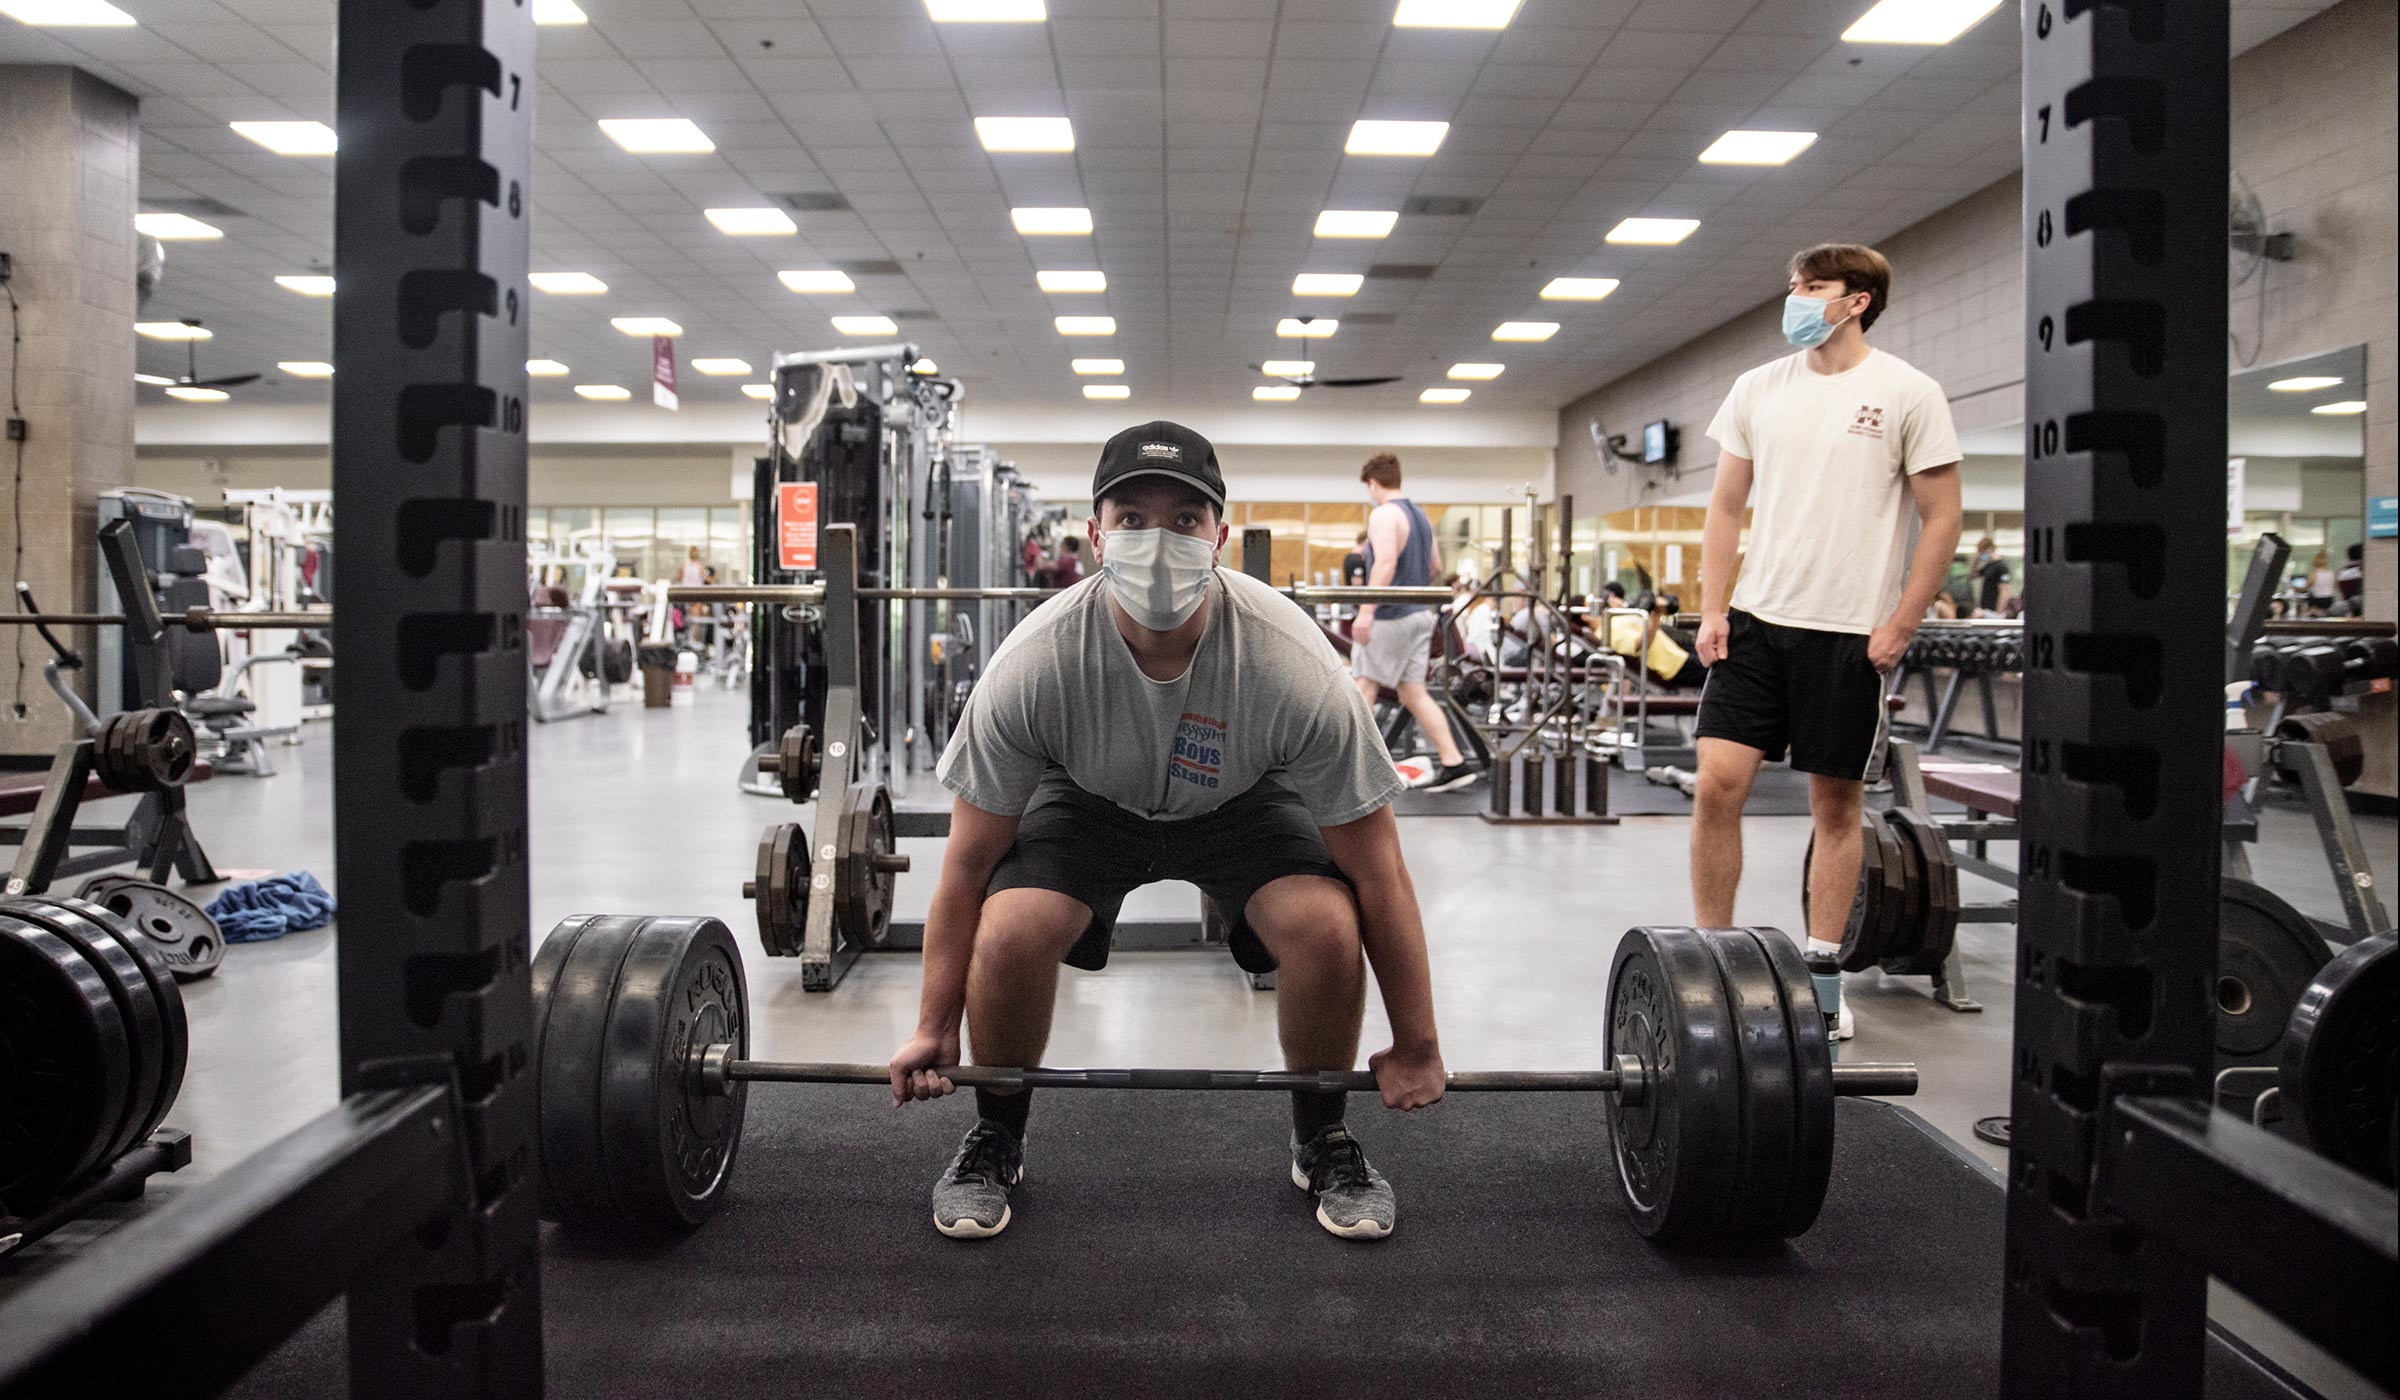 Masked student lifts heavy weights in Sanderson weight room.